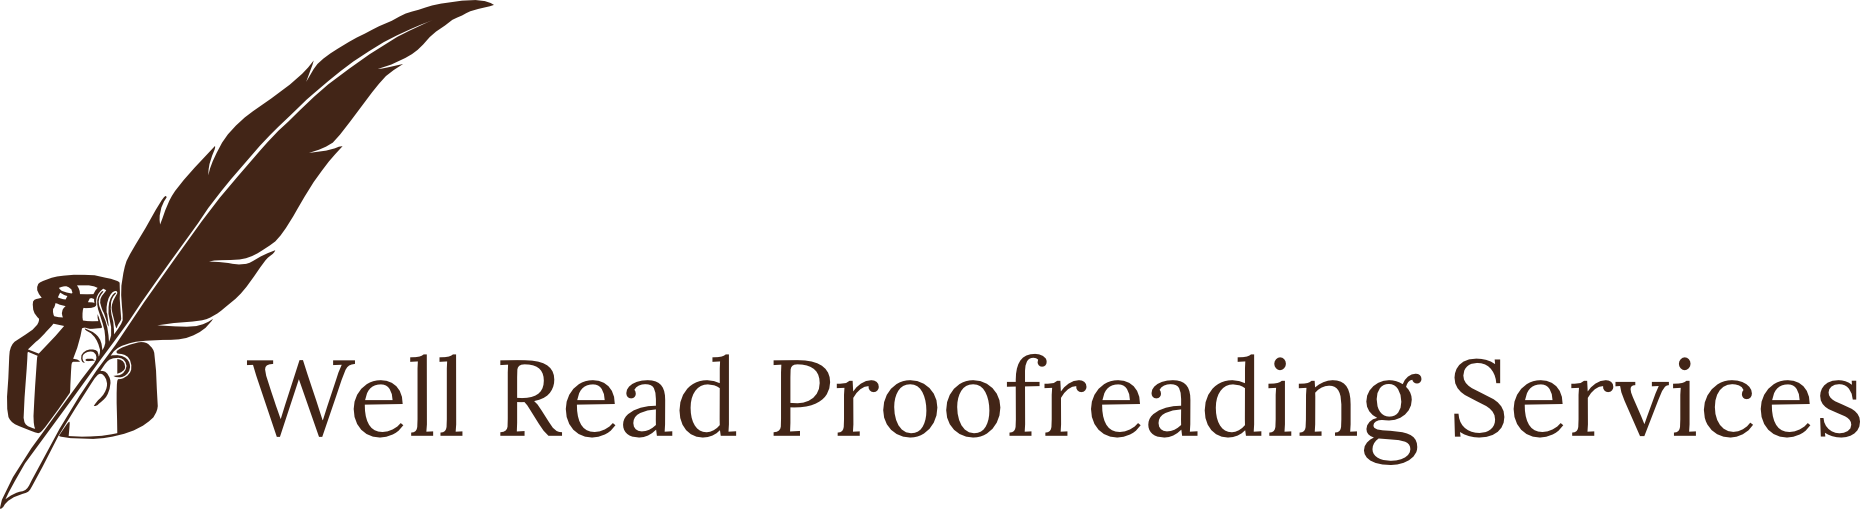 well read proofreading services, lancaster